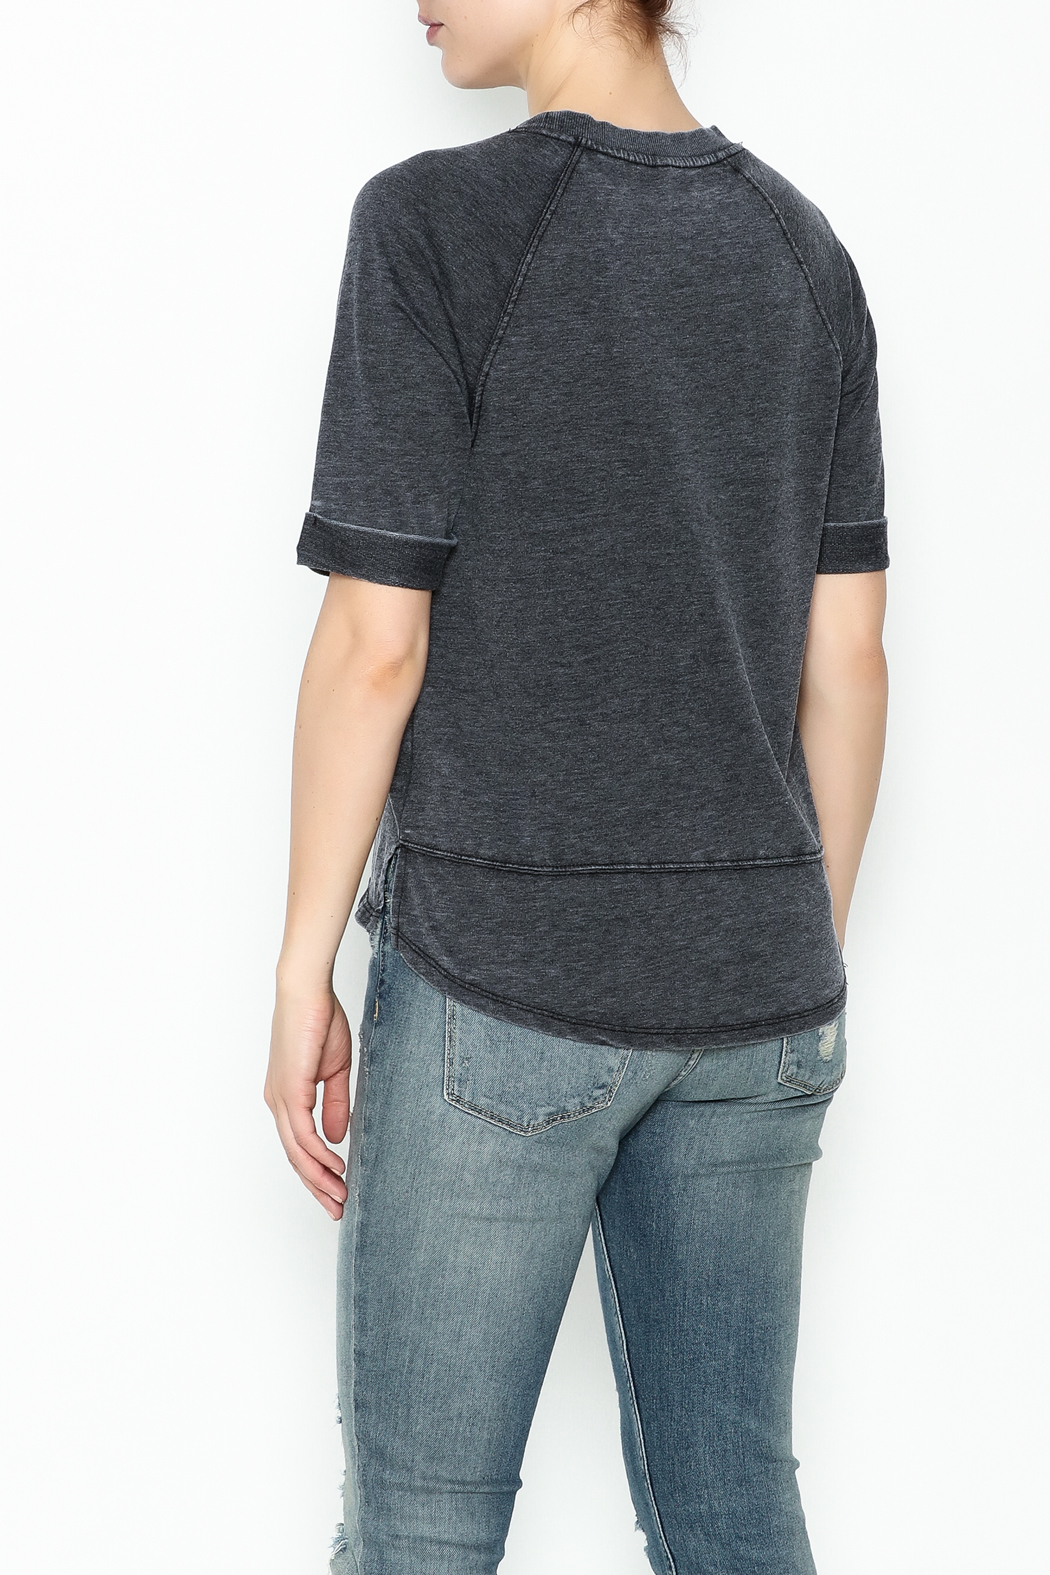 z supply Raglan Soft Top - Back Cropped Image